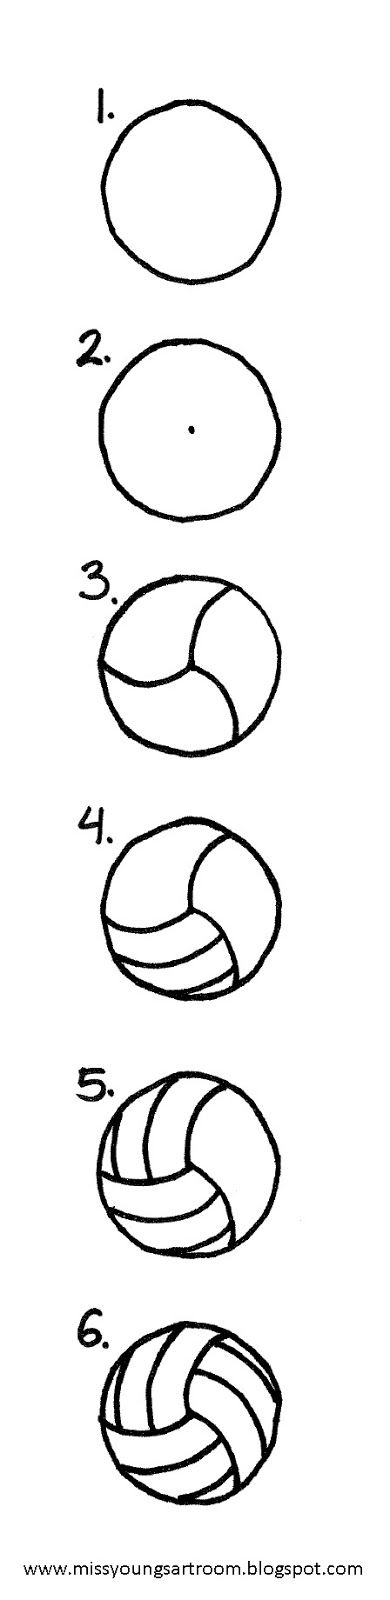 Miss Young's Art Room: How to Draw a Volleyball